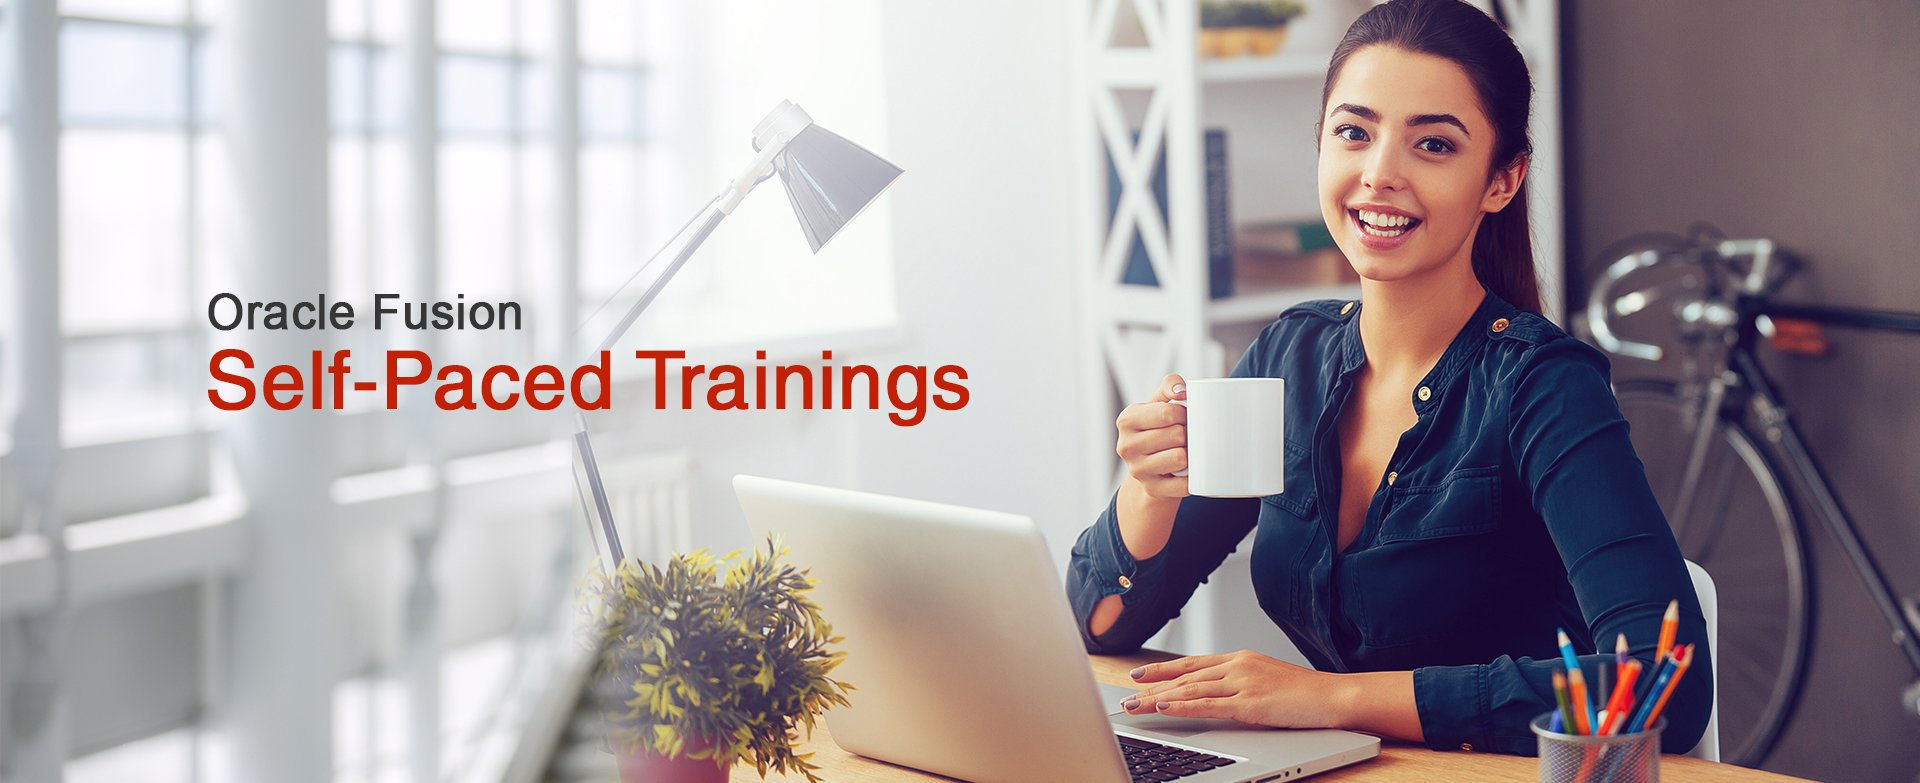 oracle-fusion-self-paced-trainings